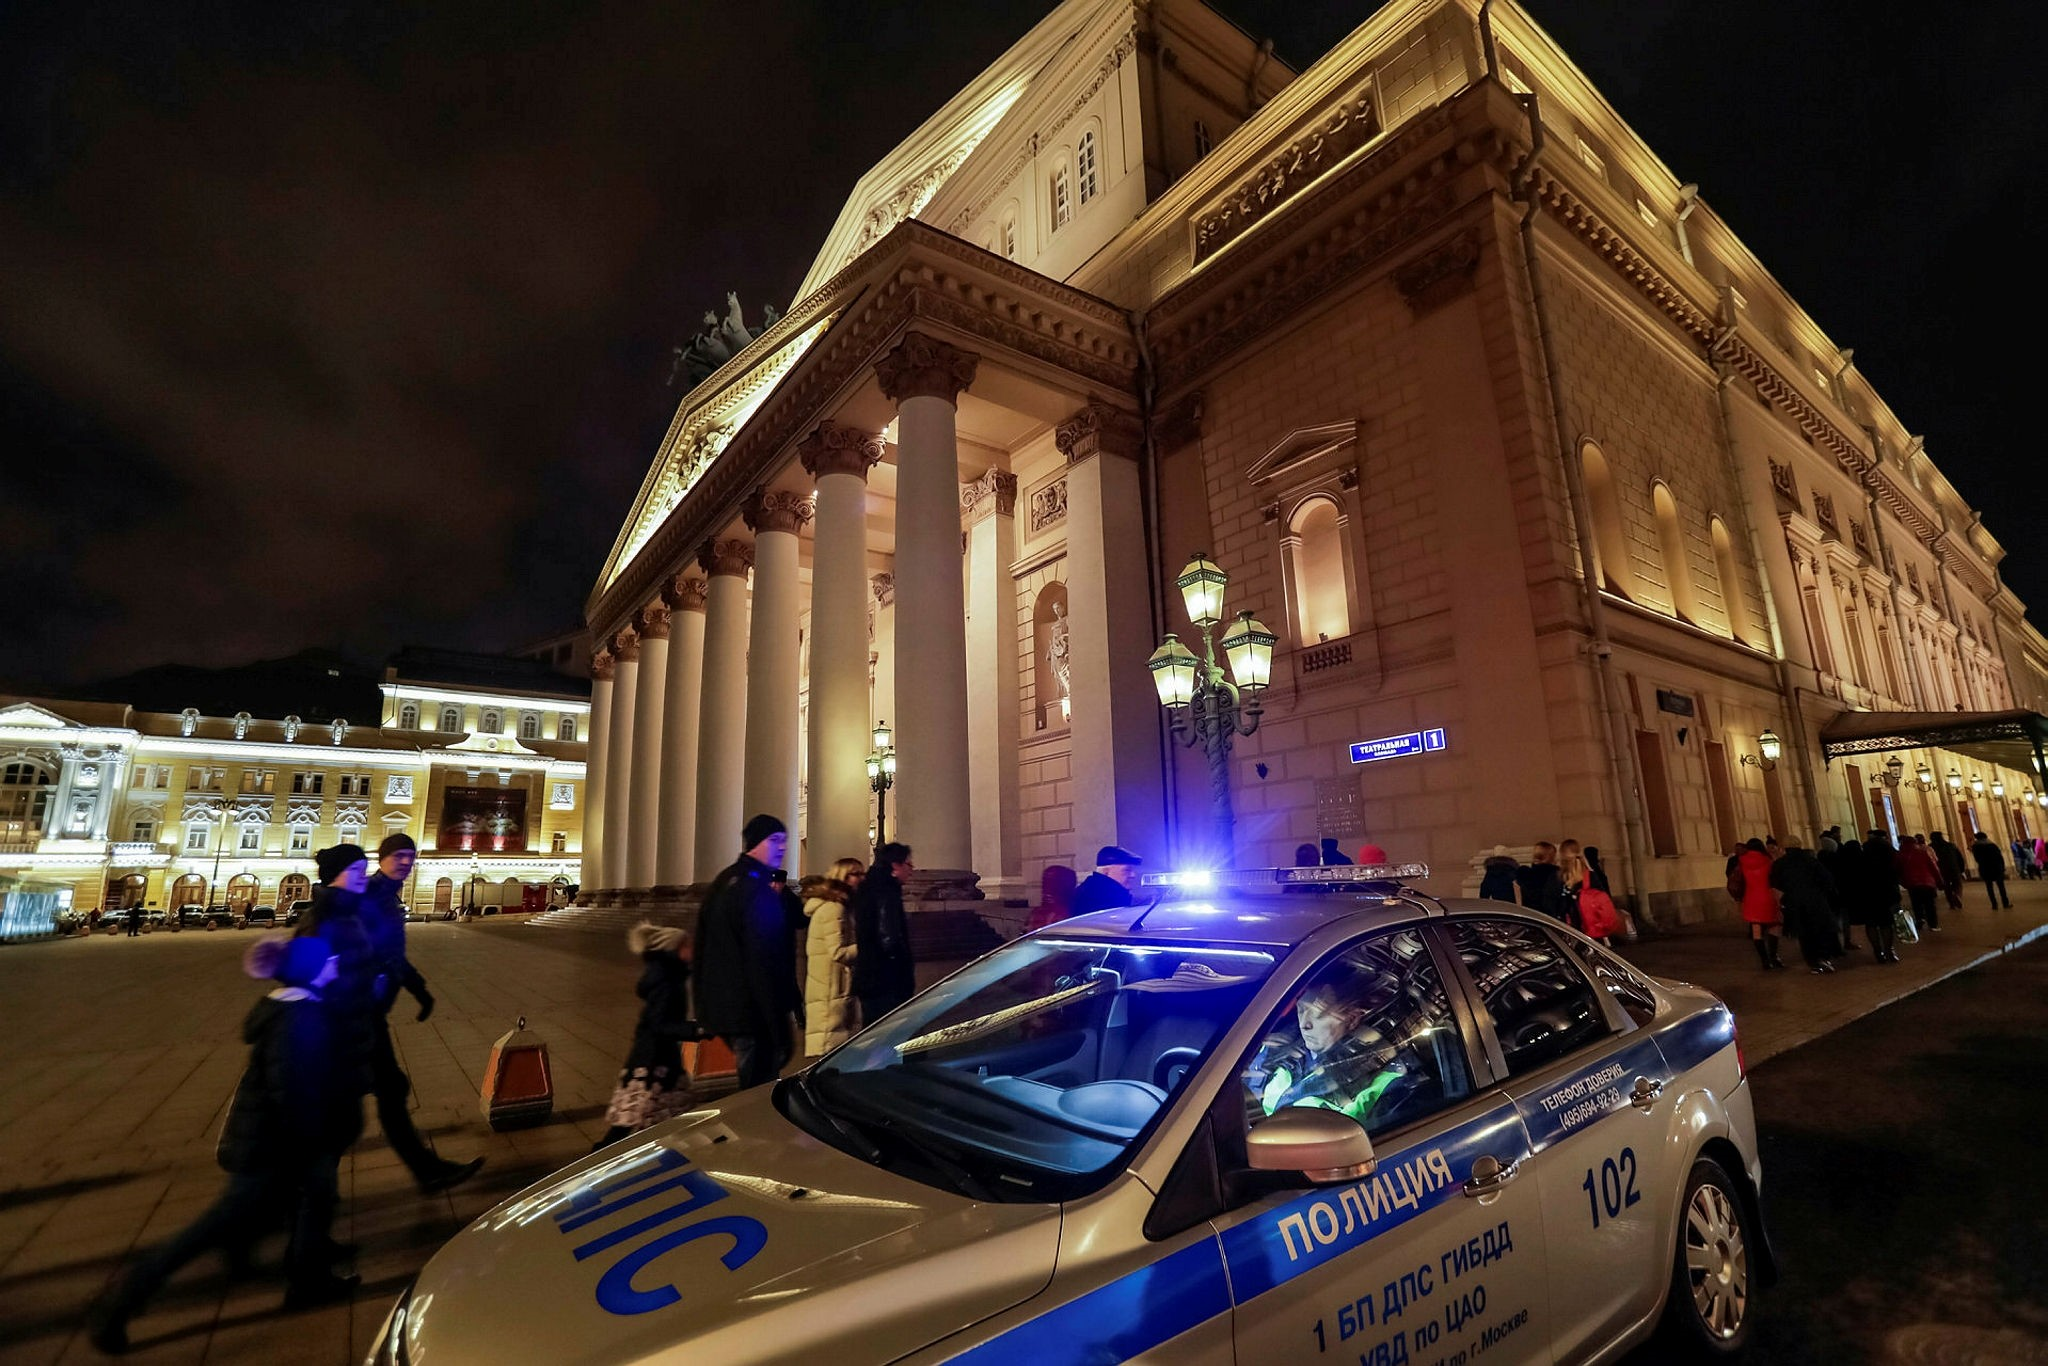 A police car is seen in front of the Bolshoi theater after bomb threats in Moscow, Russia November 5, 2017. (Reuters Photo)